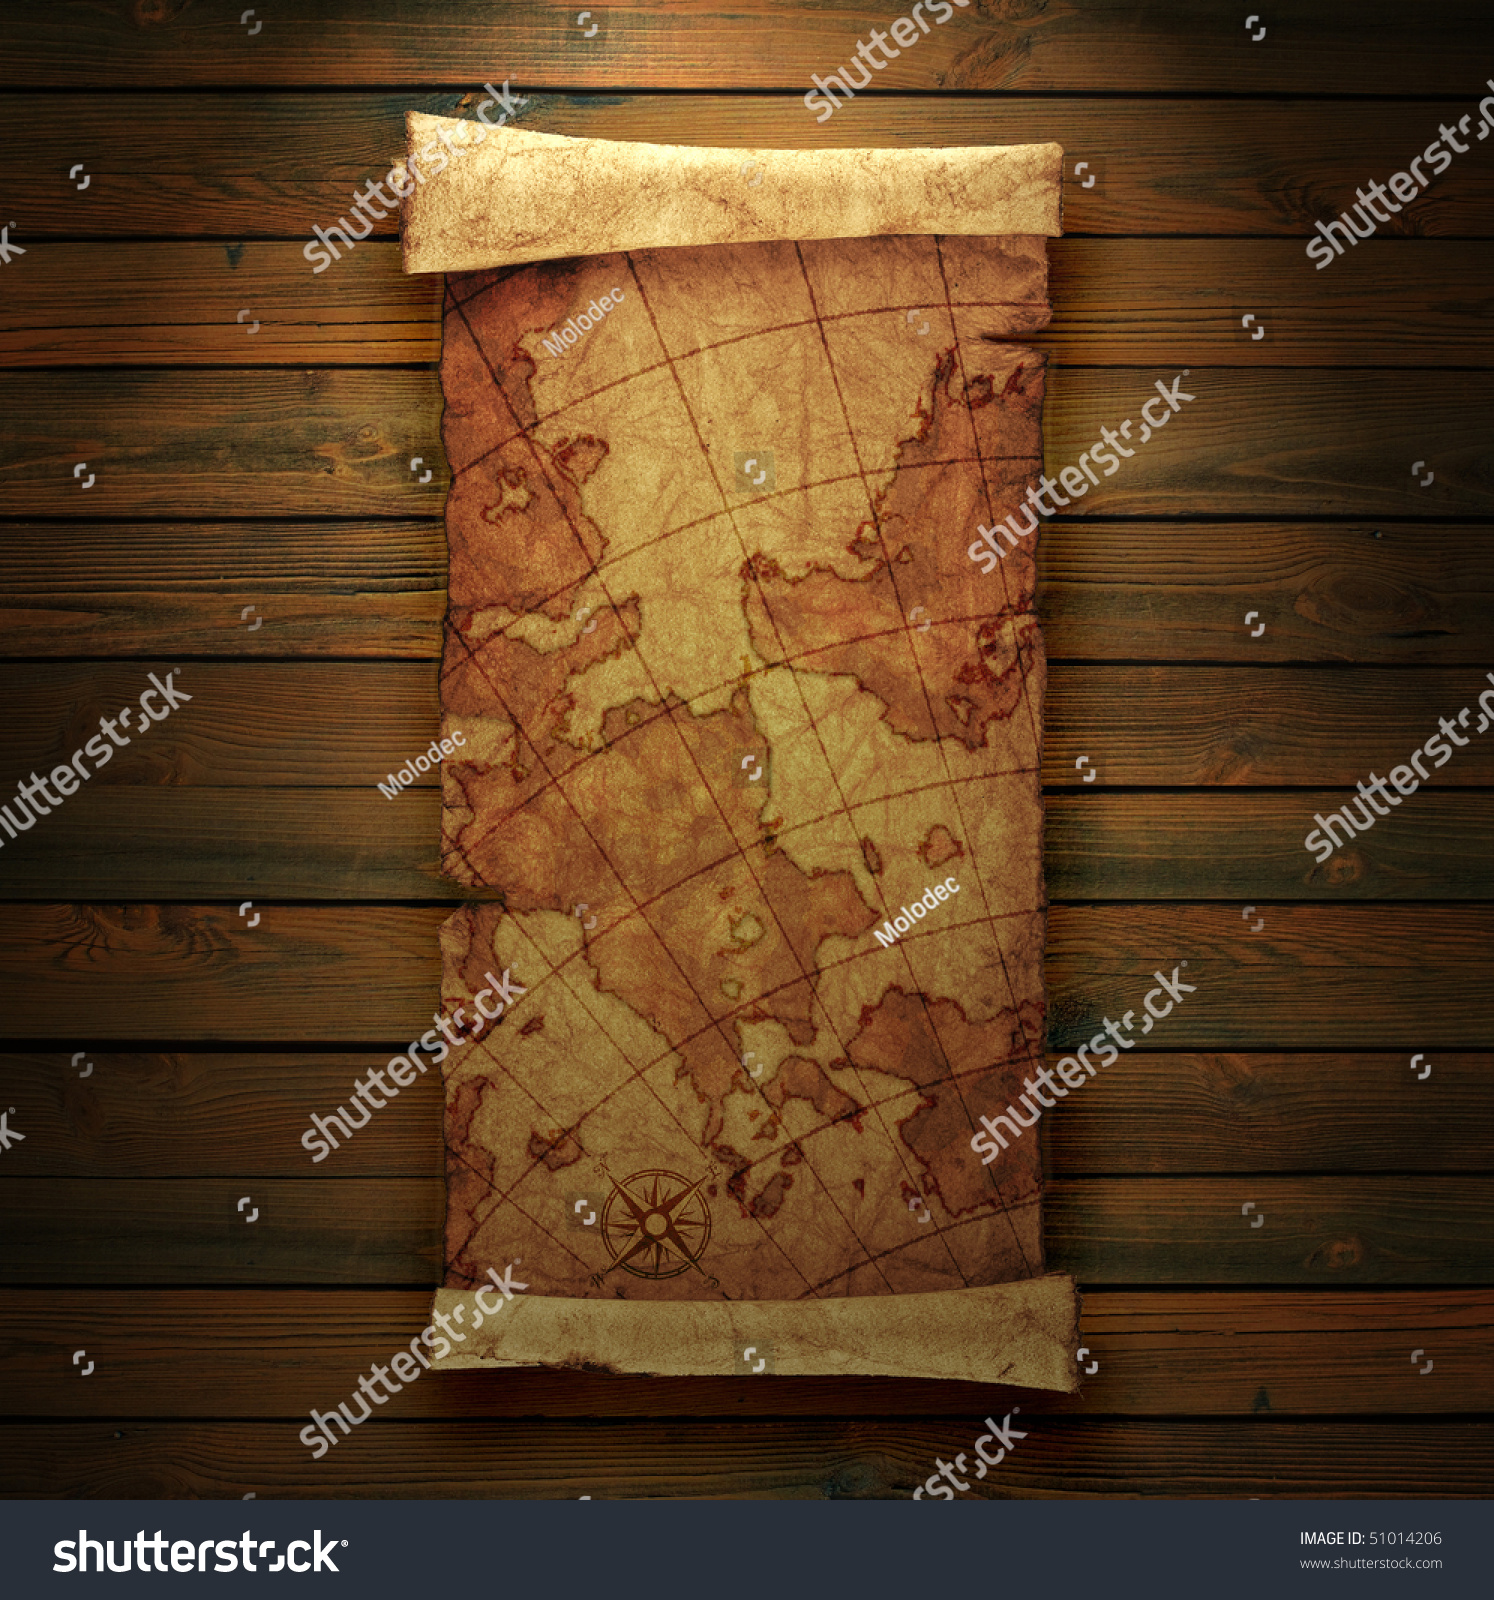 Ancient Scroll: Ancient Scroll Map, On A Wooden Background Stock Photo